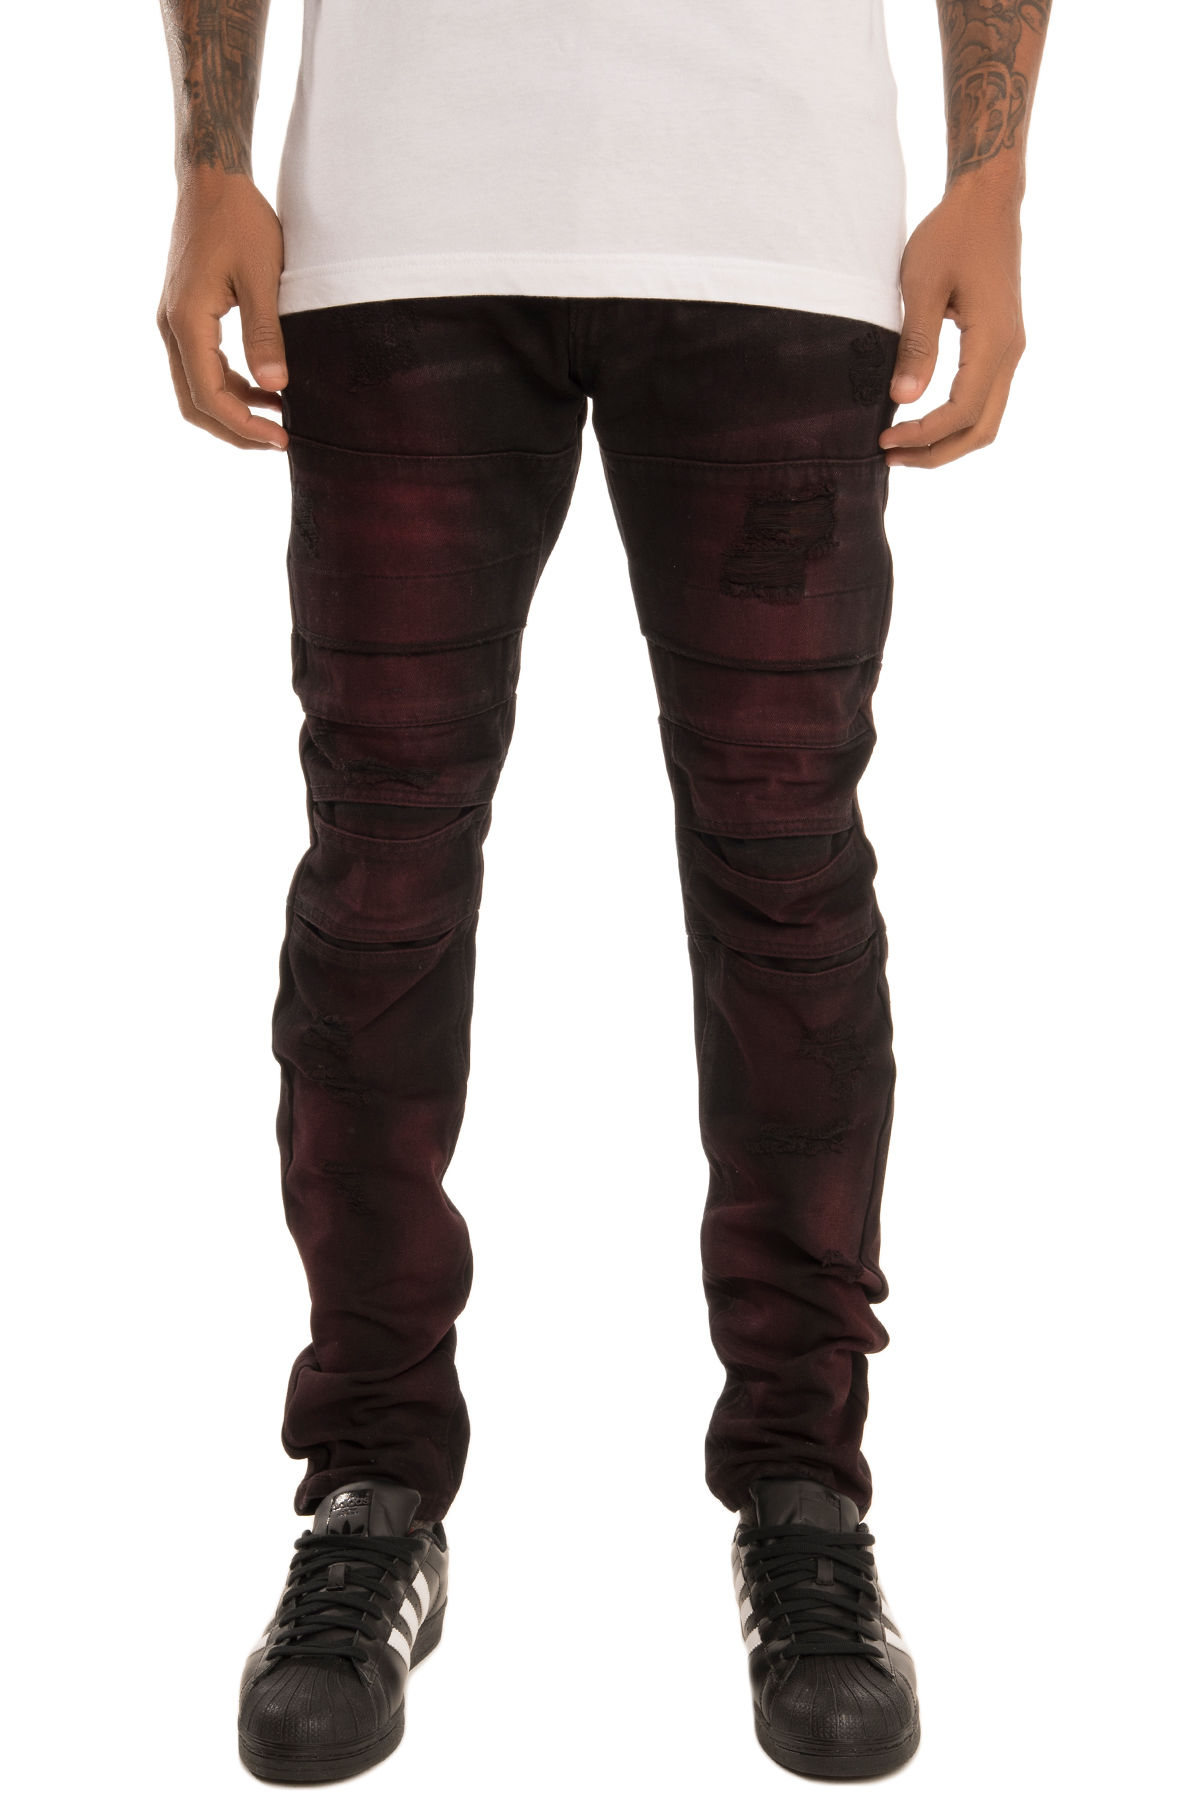 Image of SquareZero Moto Inspired Denim Jeans